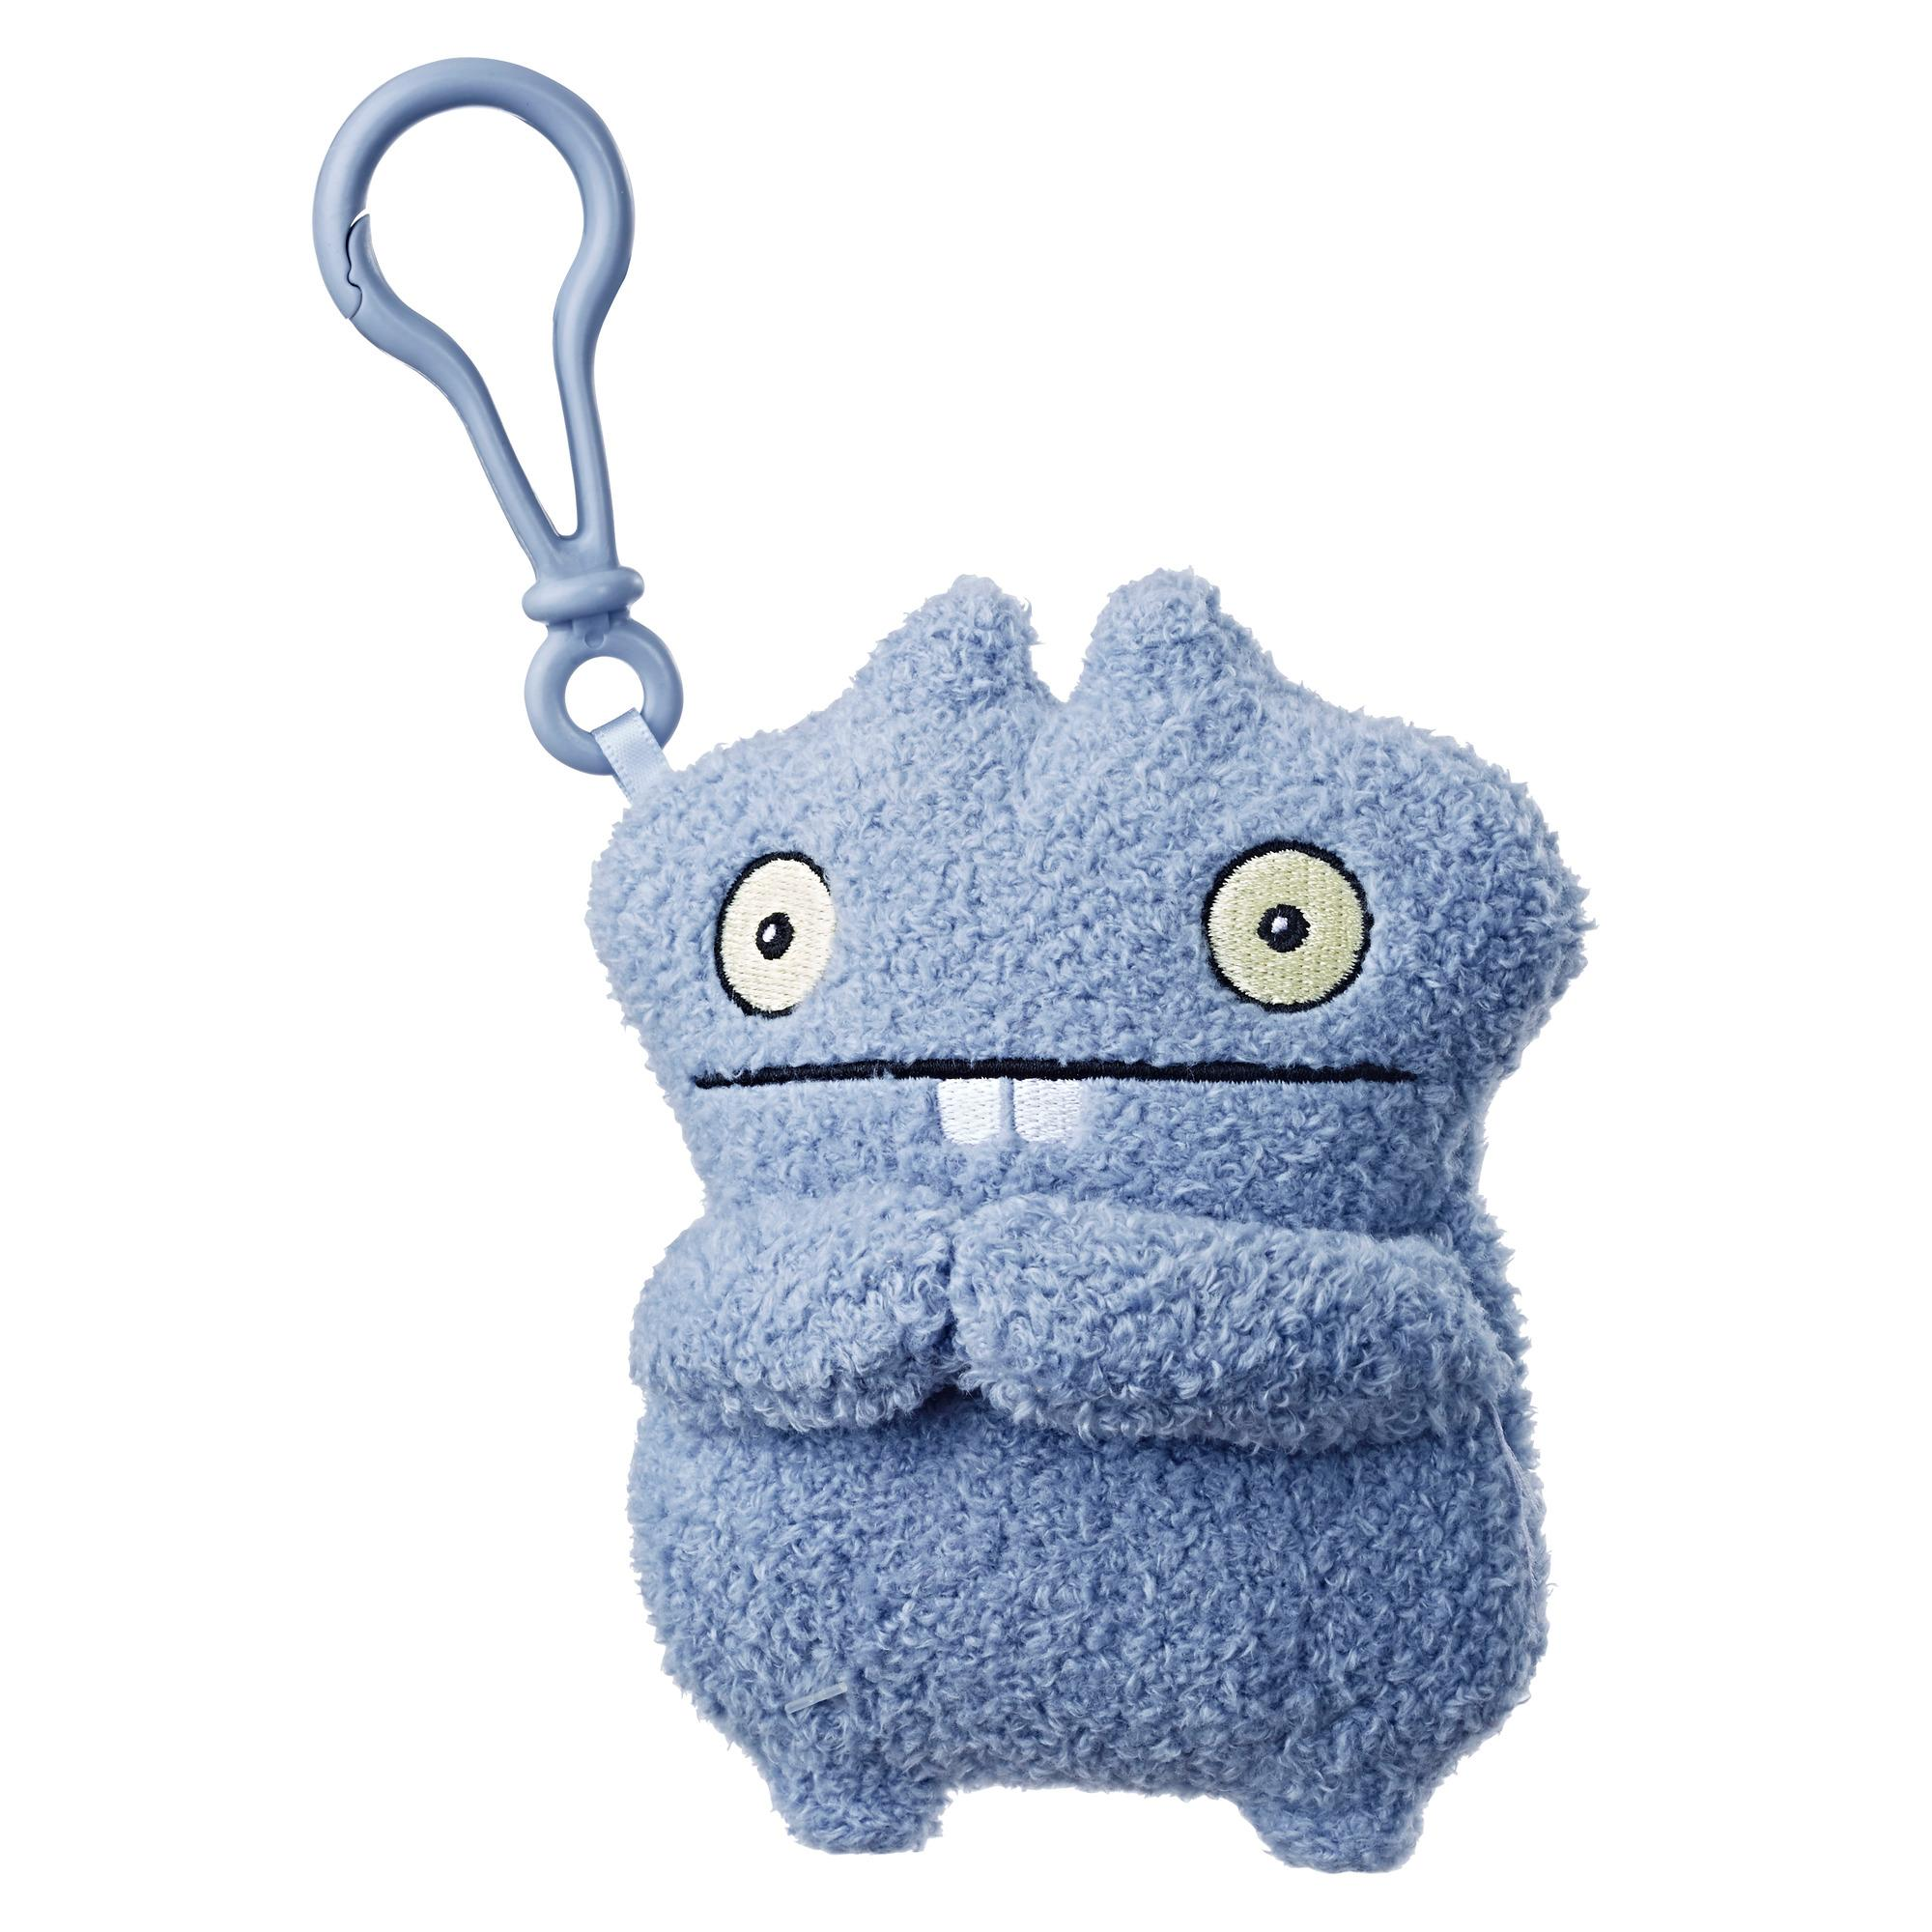 UglyDolls Babo To-Go Stuffed Plush Toy, 12,5 cm. tall